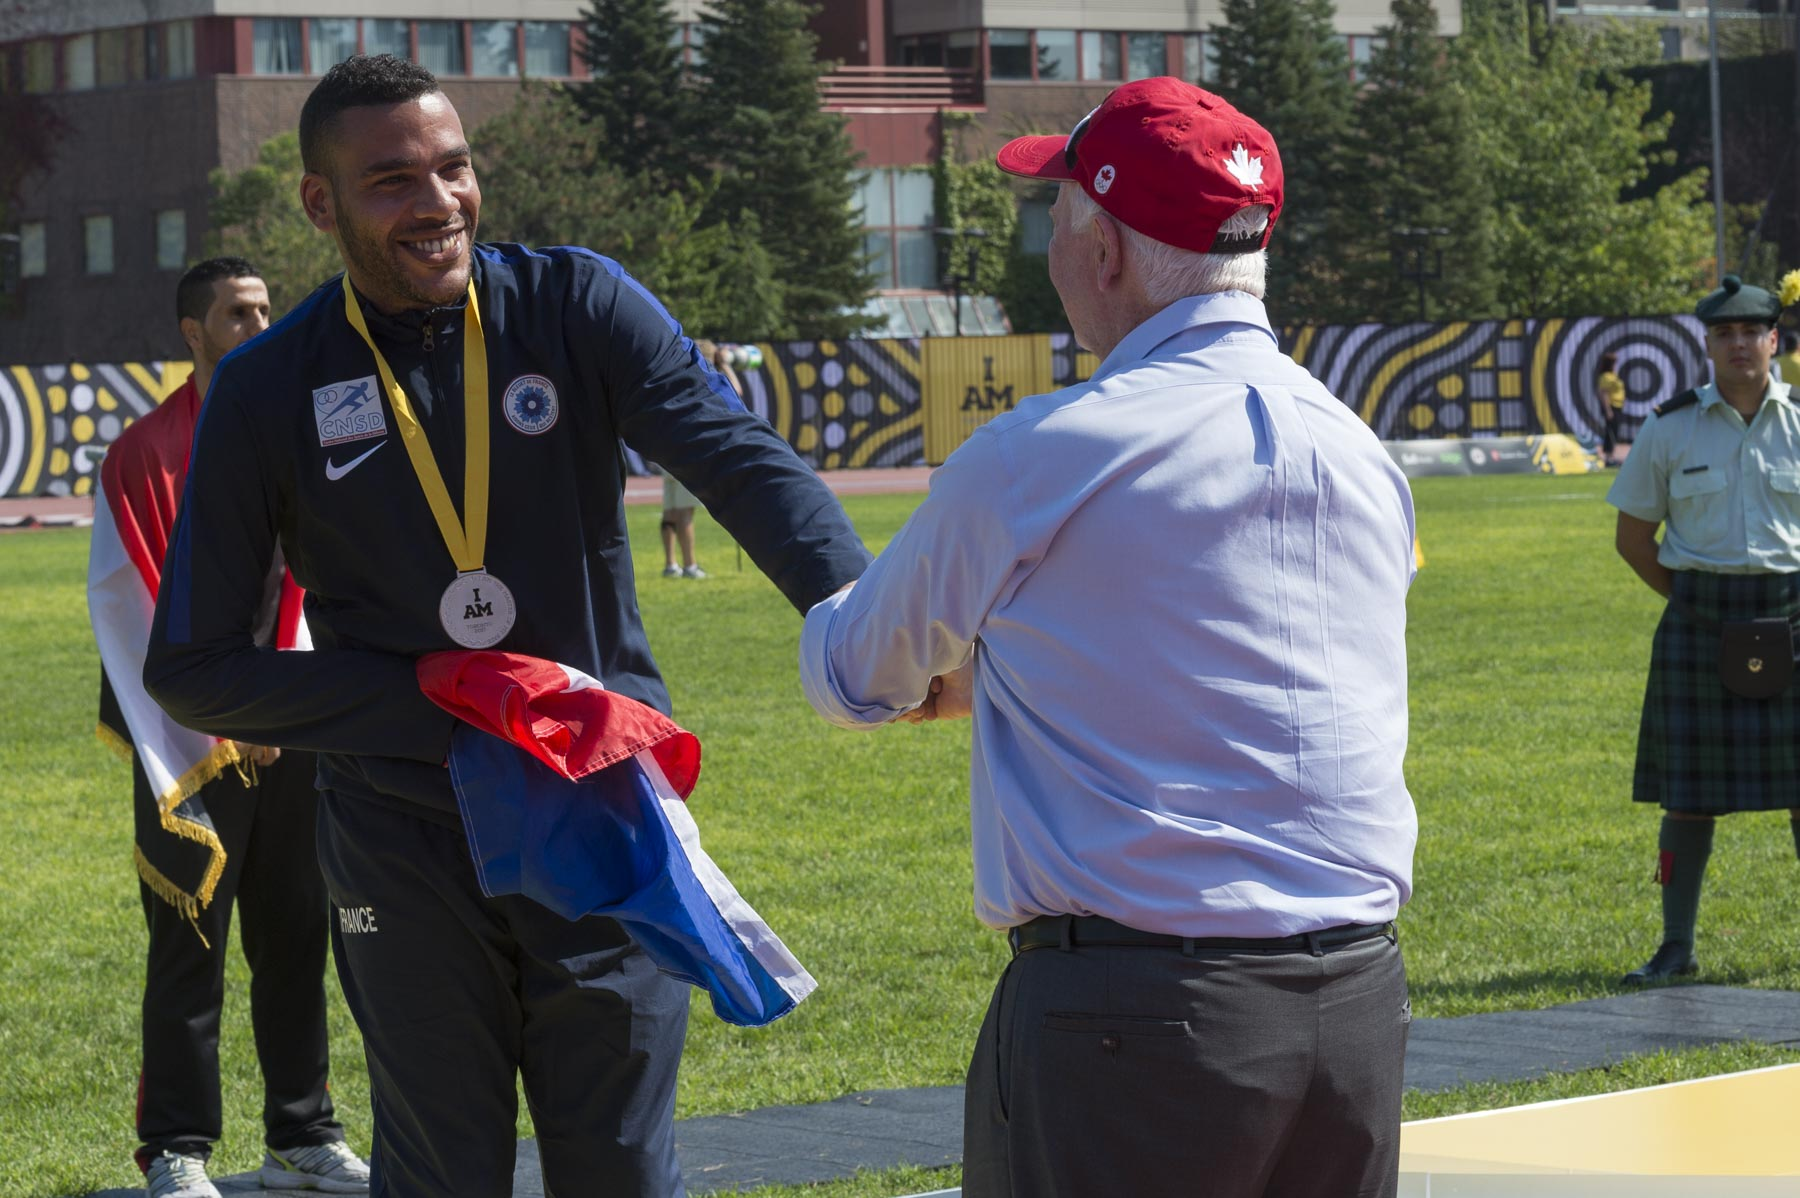 As governor general and commander-in-chief of Canada, His Excellency presented medals to the top three competitors in the men's 100-metre race.